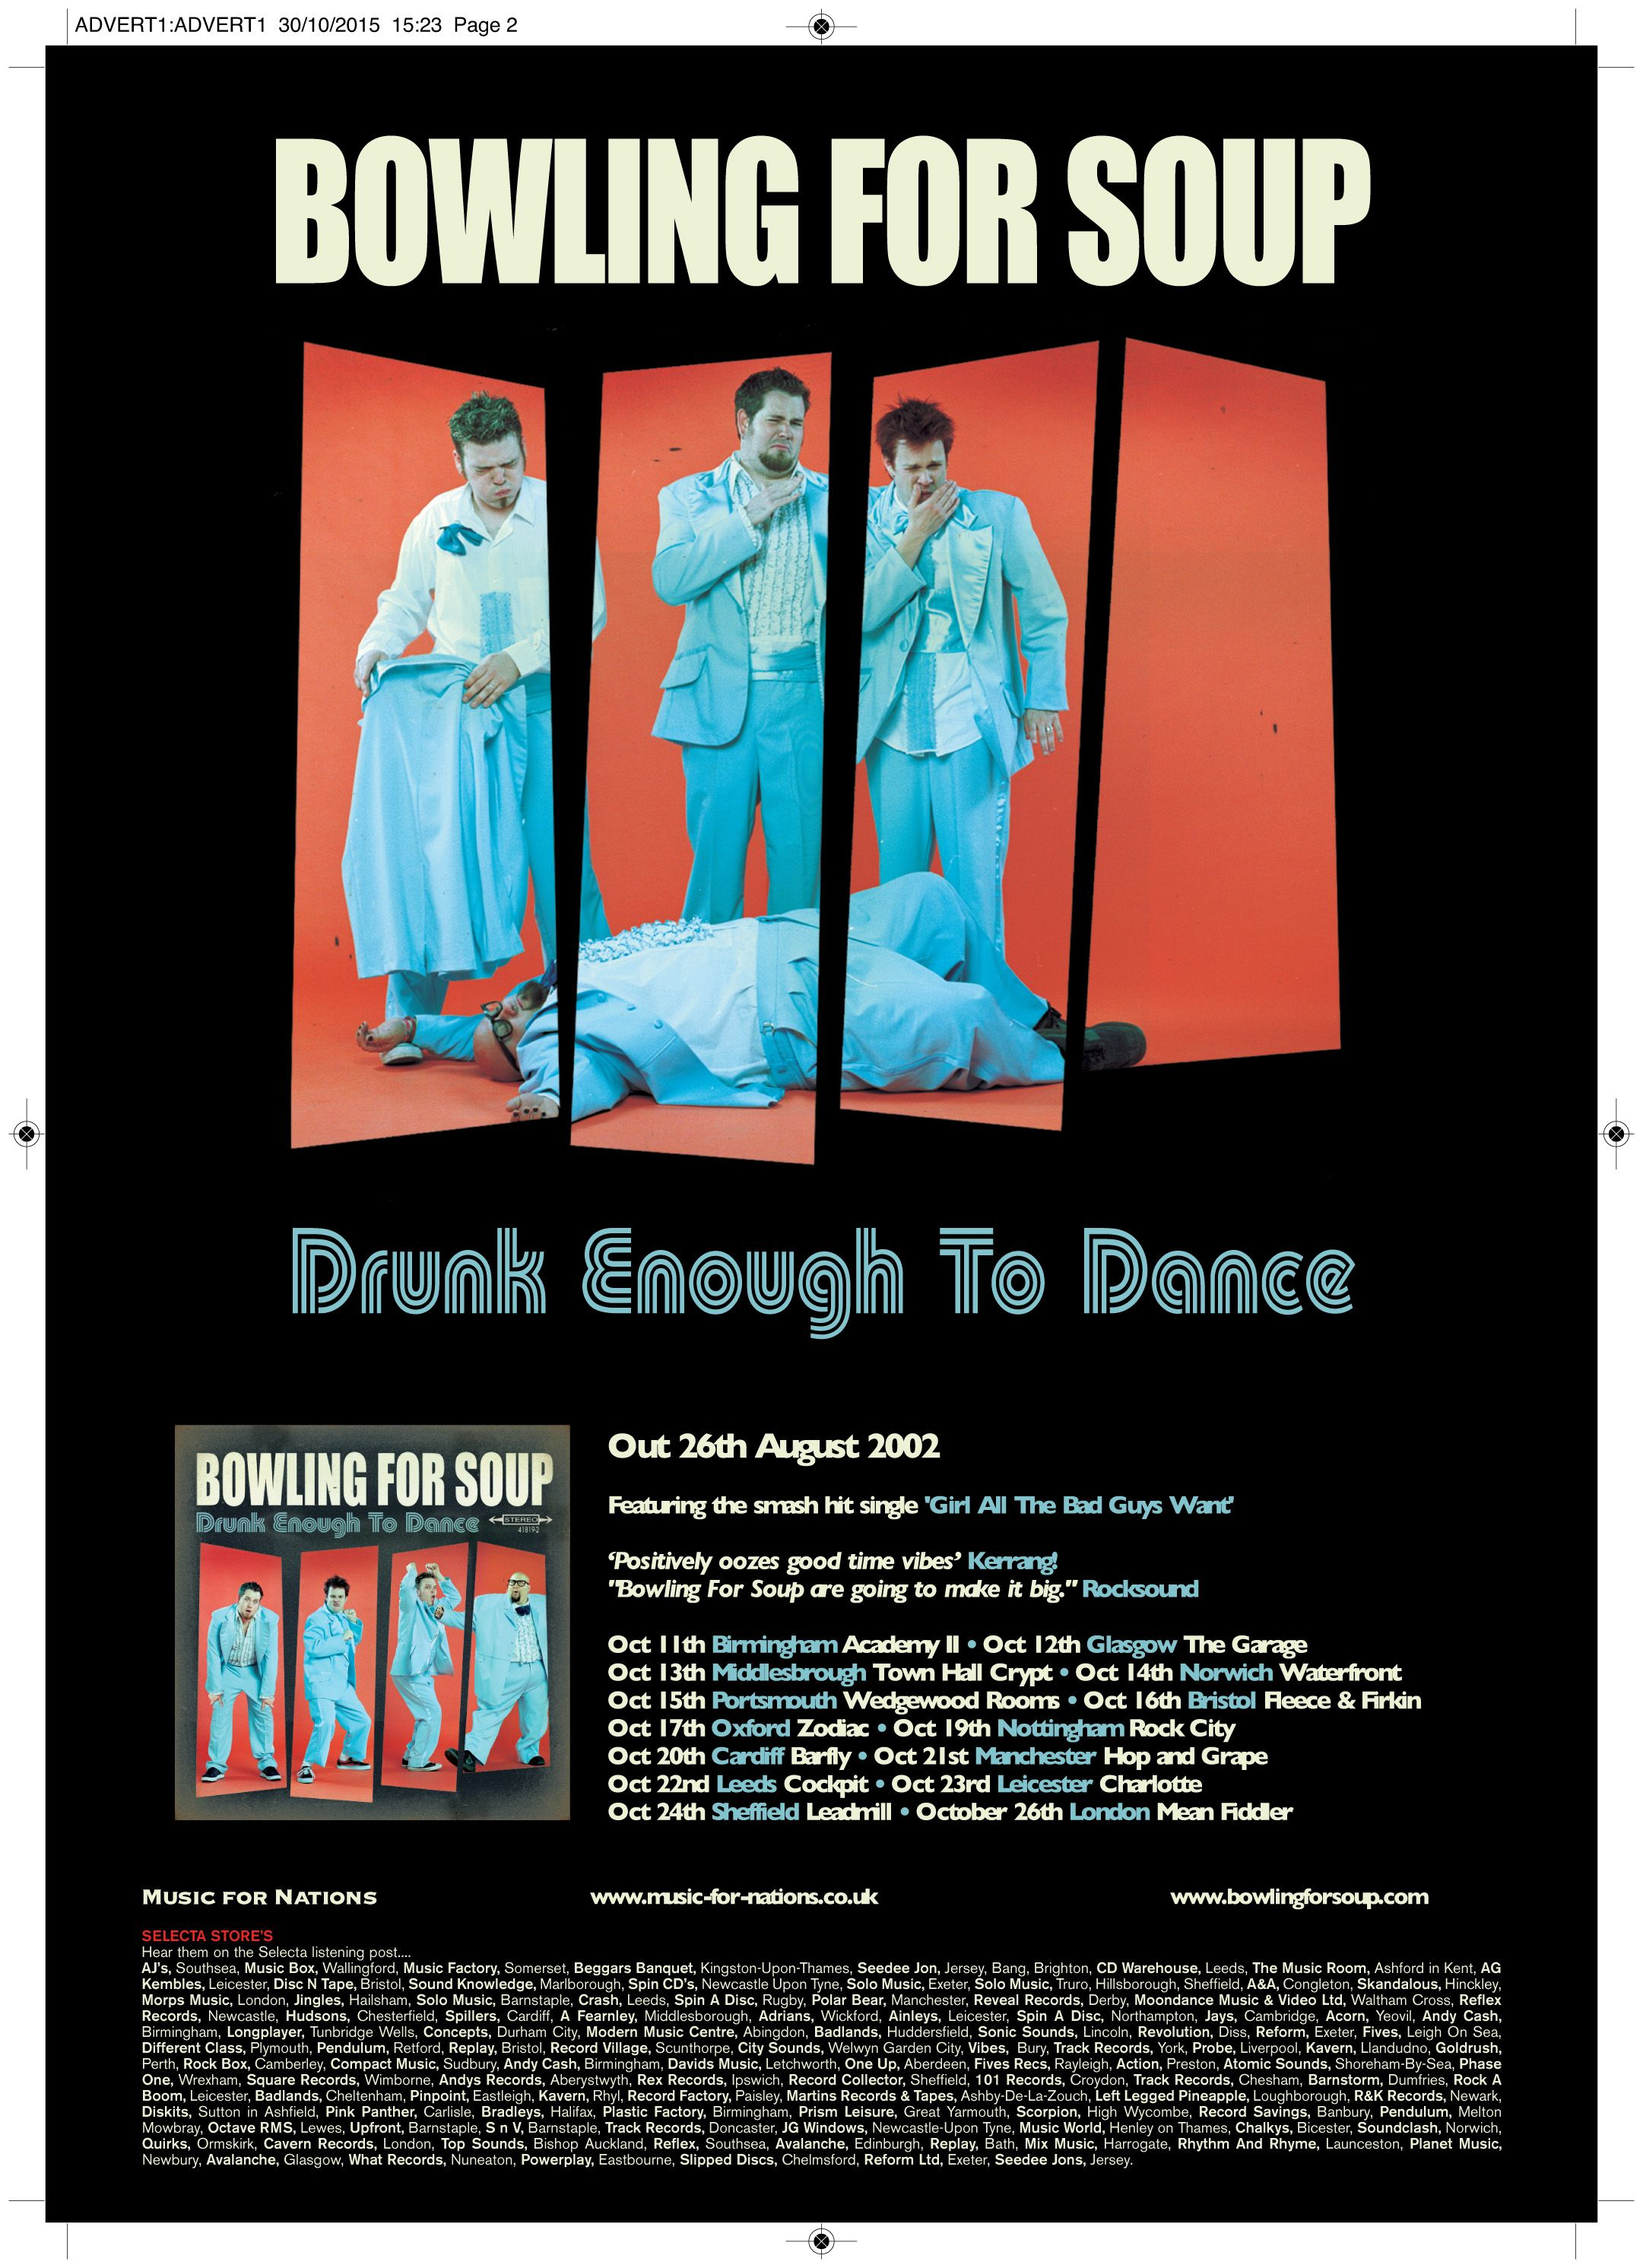 Bowling For Soup Drunk Enough To Dance Full Page Kerrang Ad